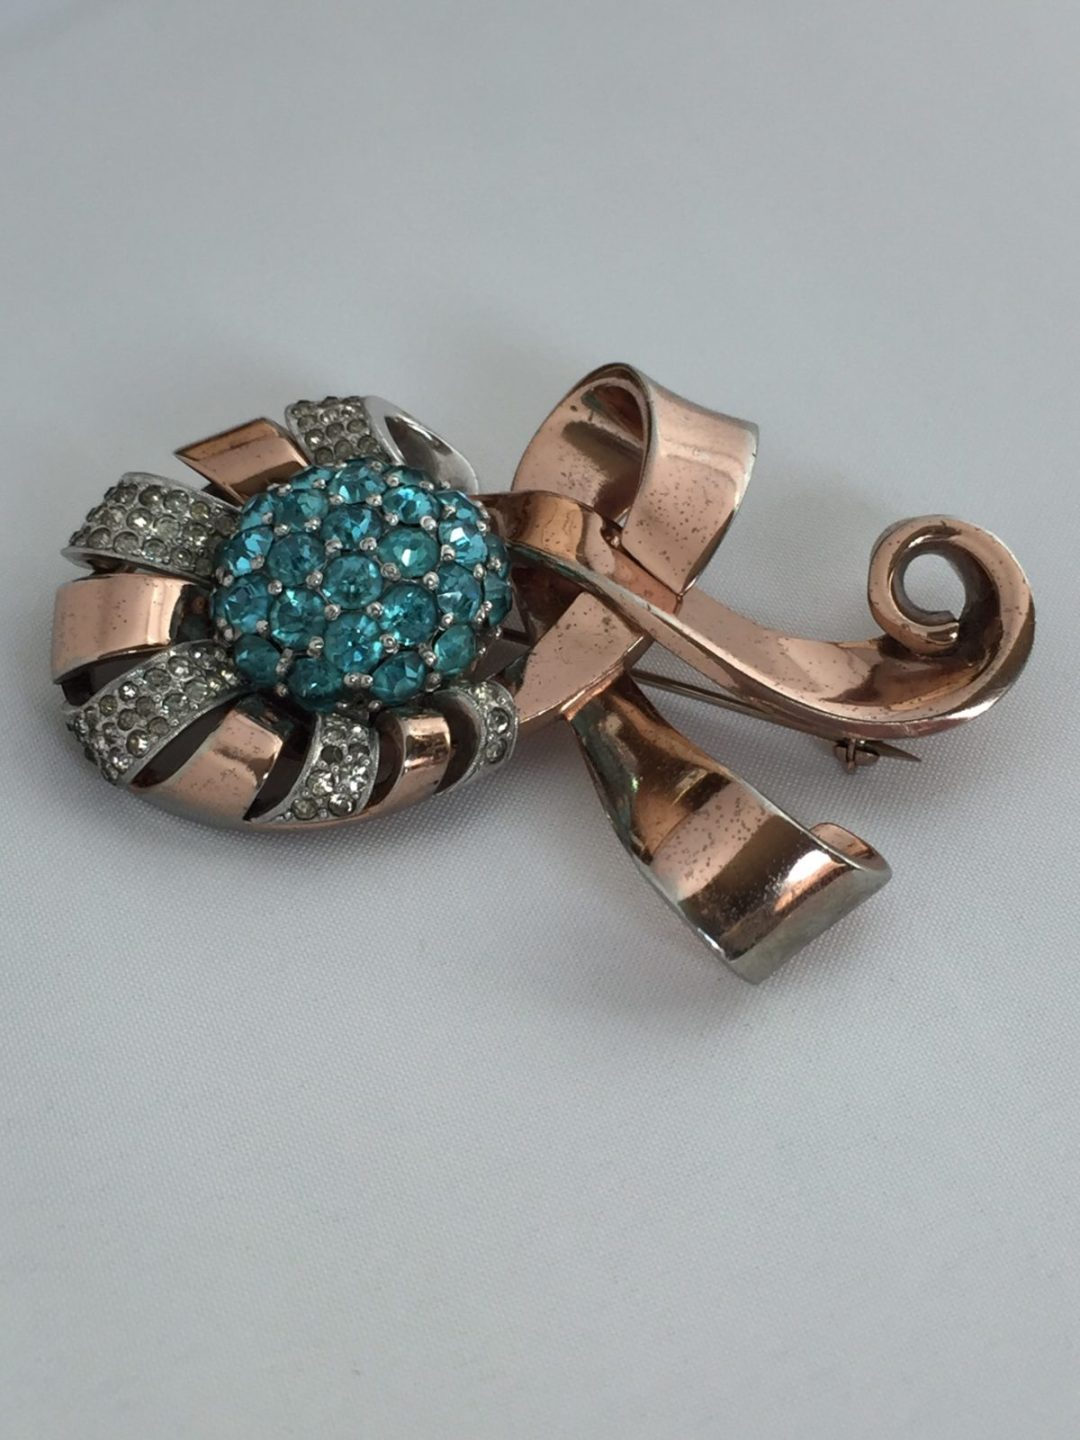 Pennino Gilt Metal Ribbon Brooch Exquisite Design and Detail